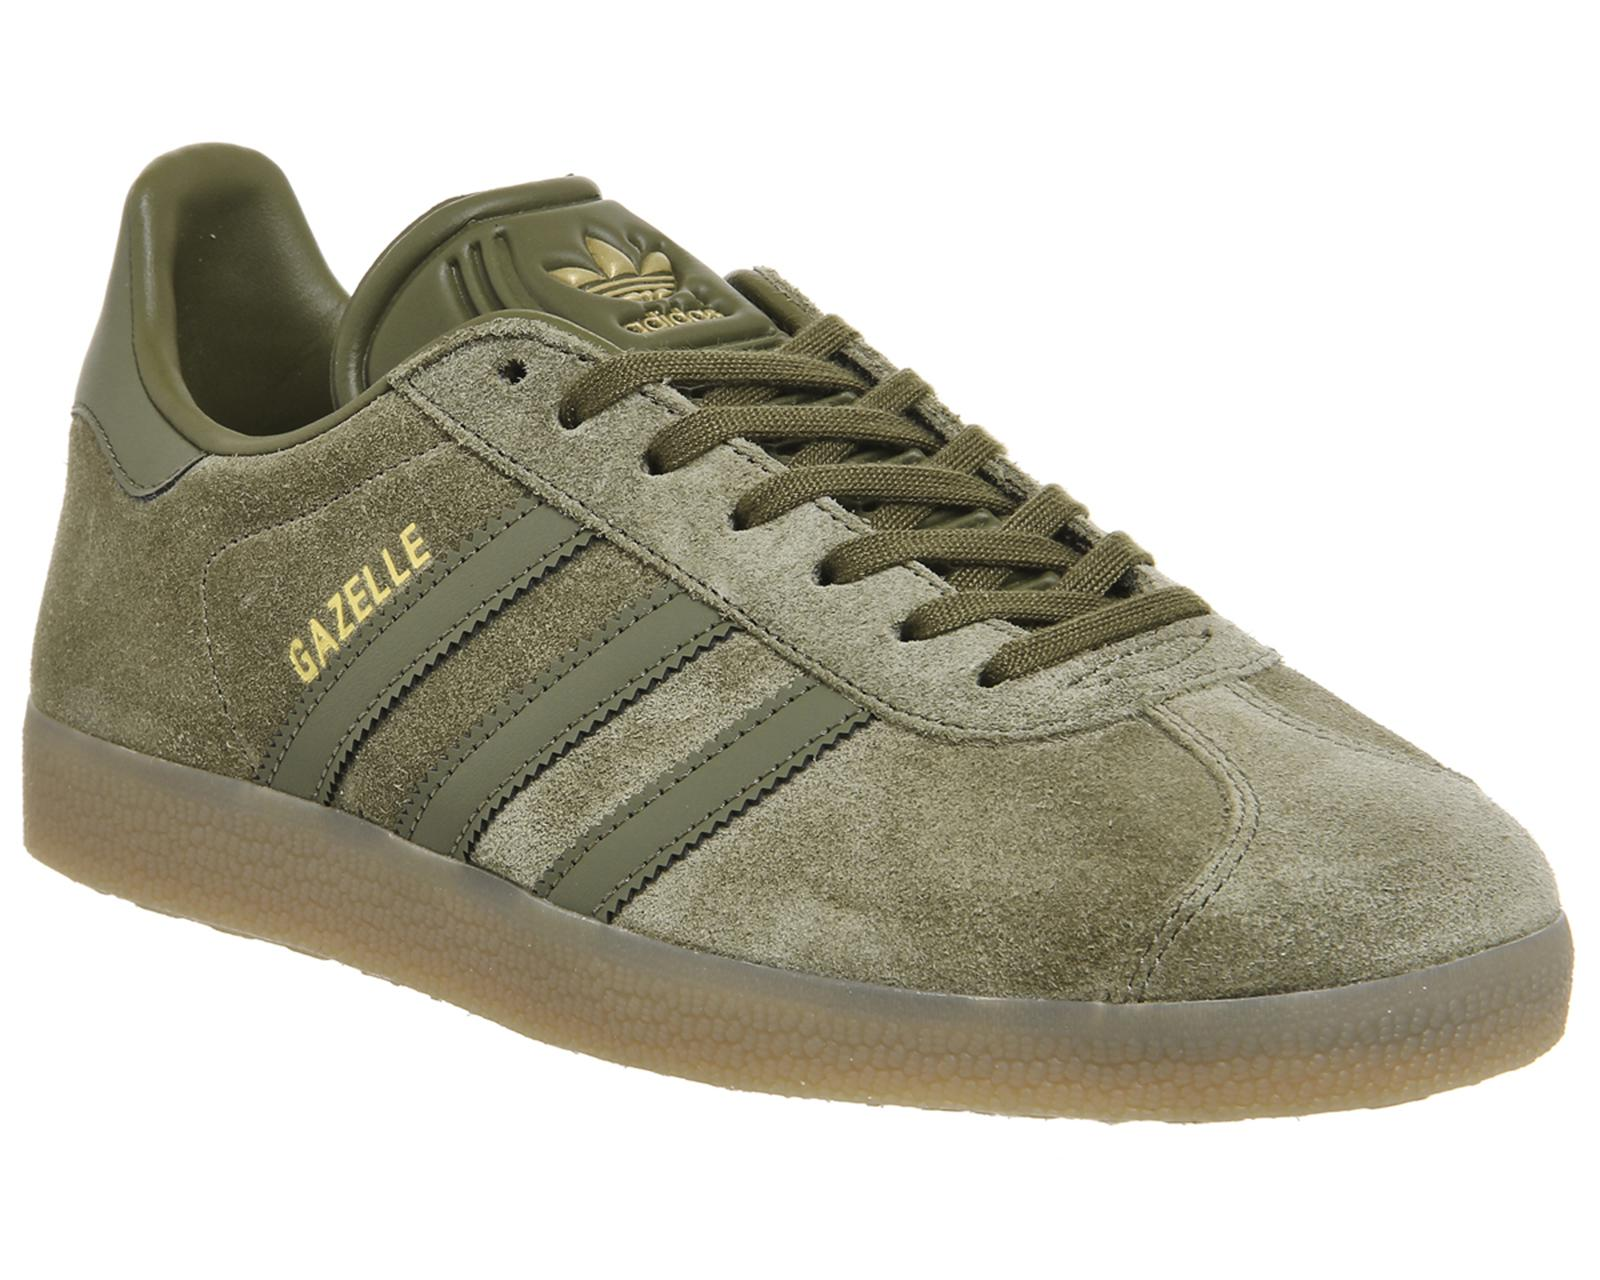 adidas Suede Gazelle Olive Shoe Bb5265 in Green for Men - Lyst